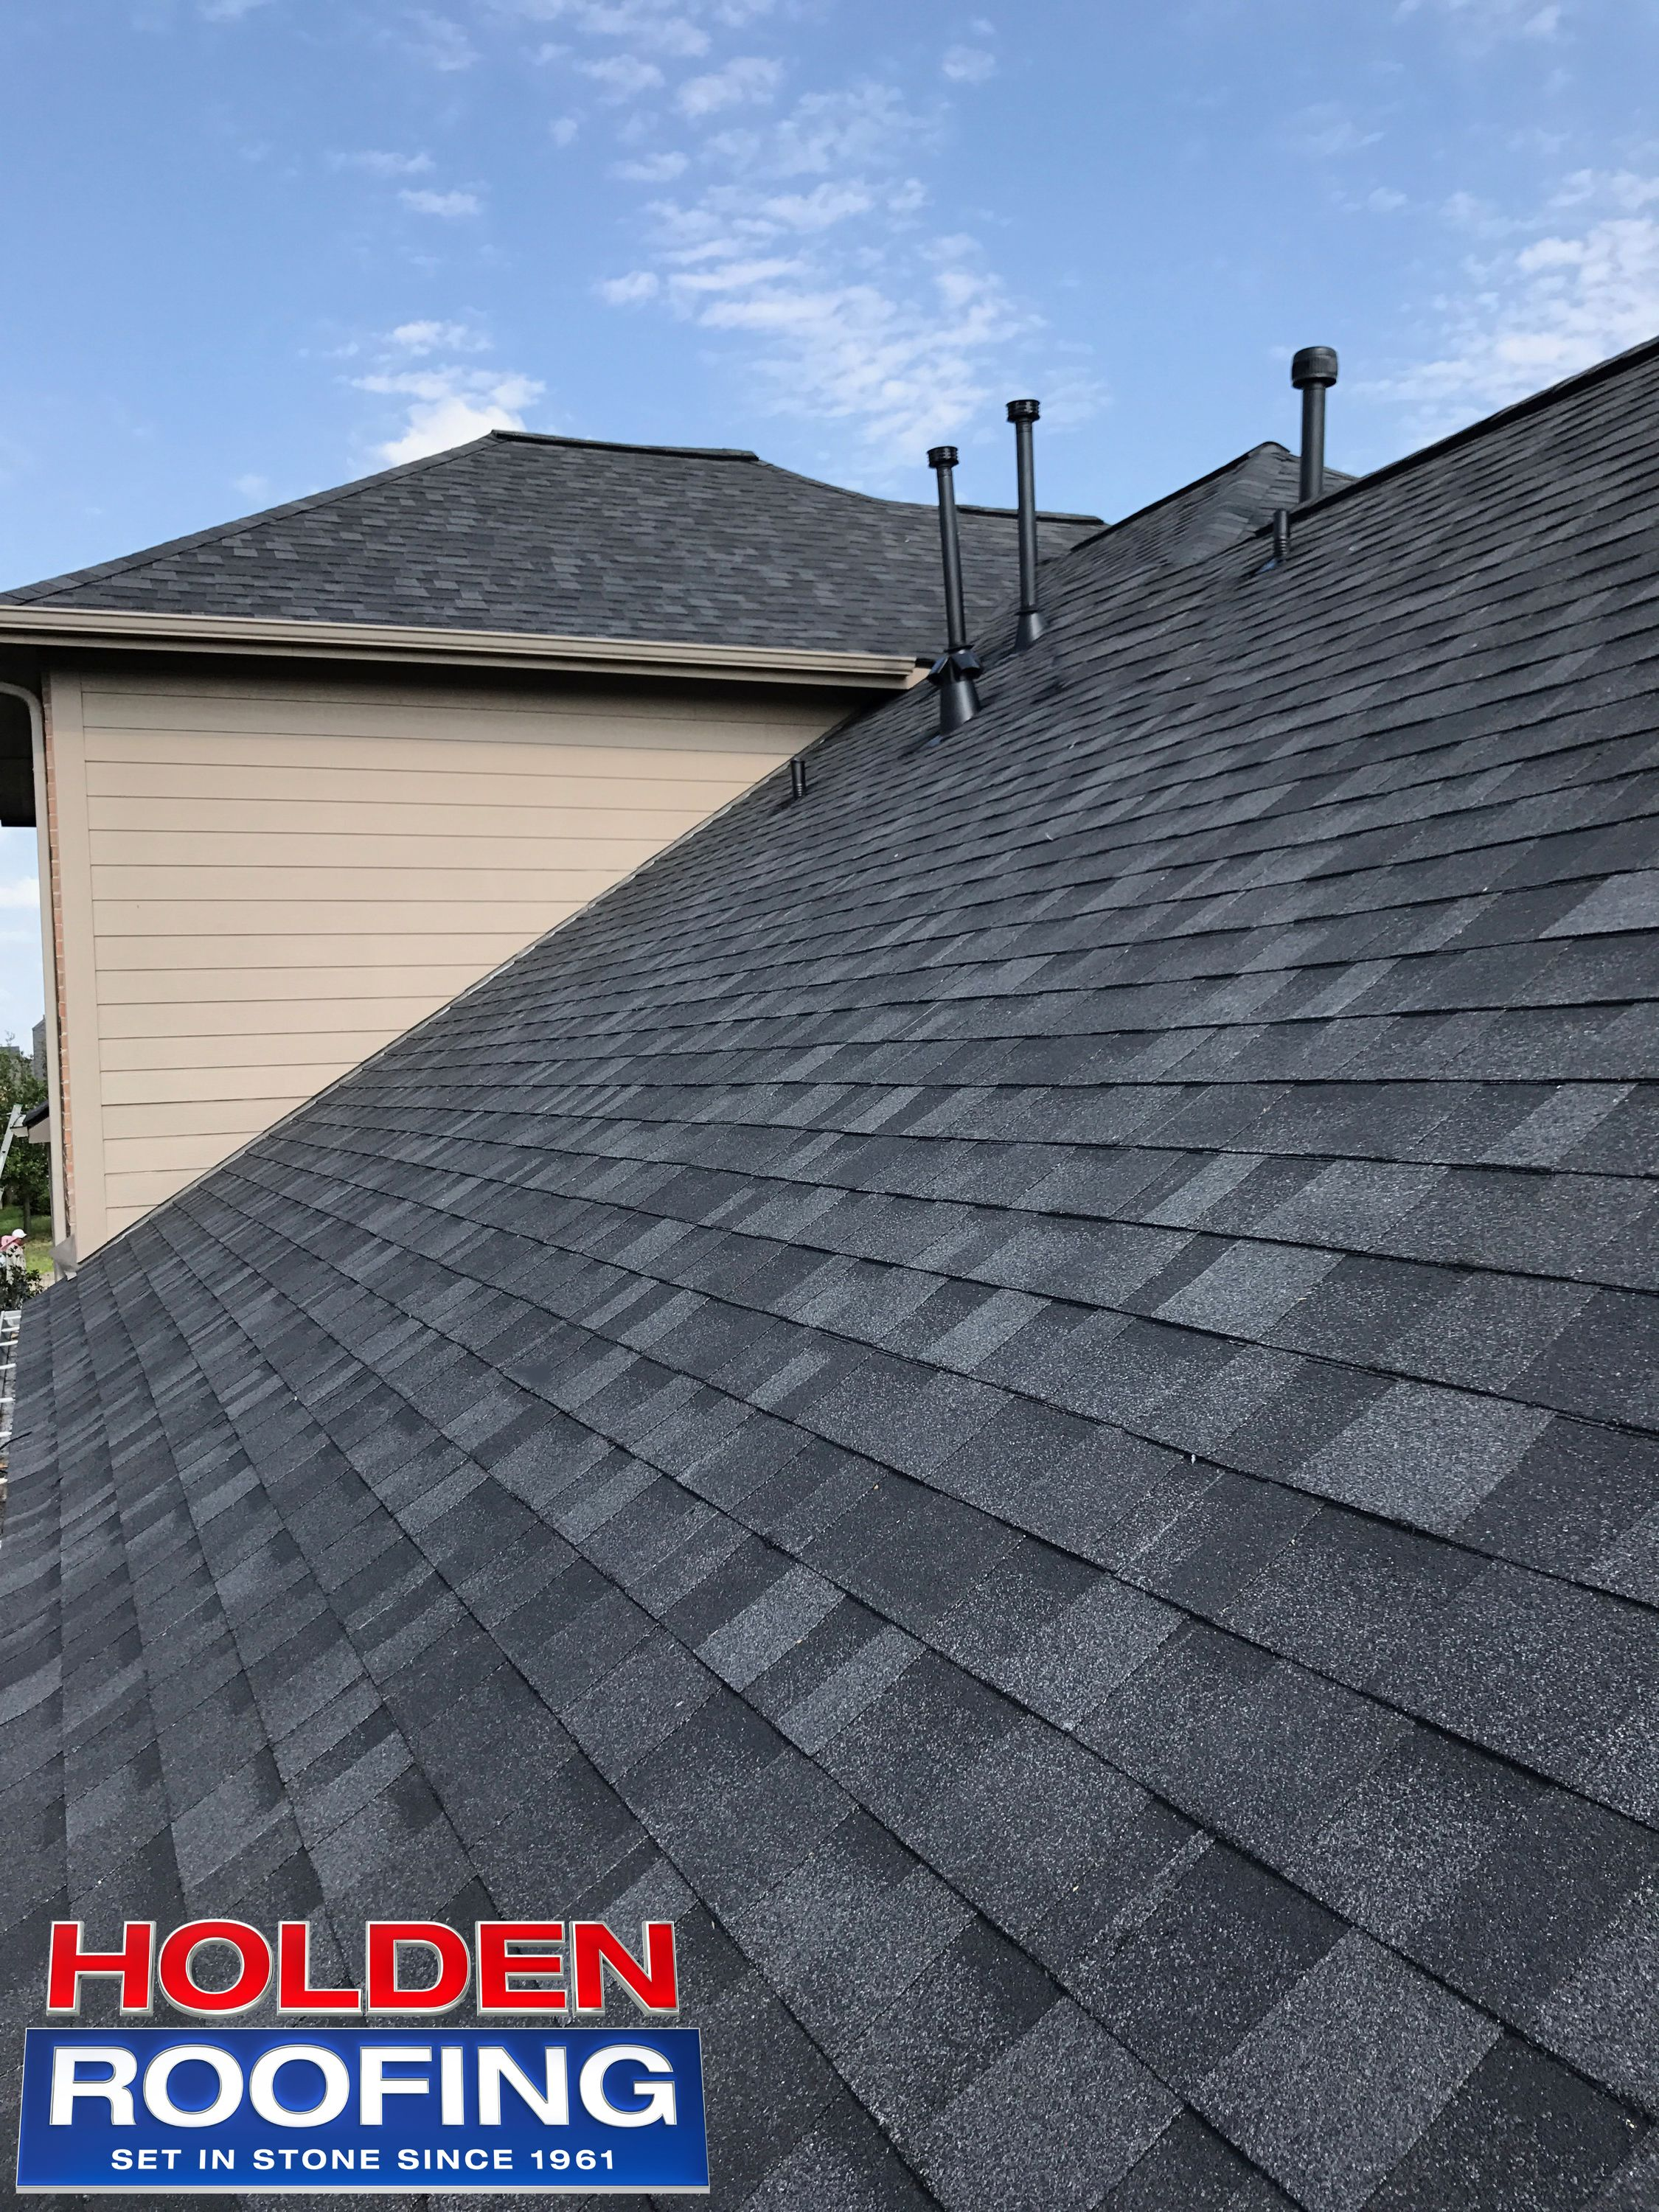 Every Accomplishment And Finished Project Starts With Dedication Hard Work And Professionalism Take A Look At Some Photos From A Roofing Holden Roof Repair